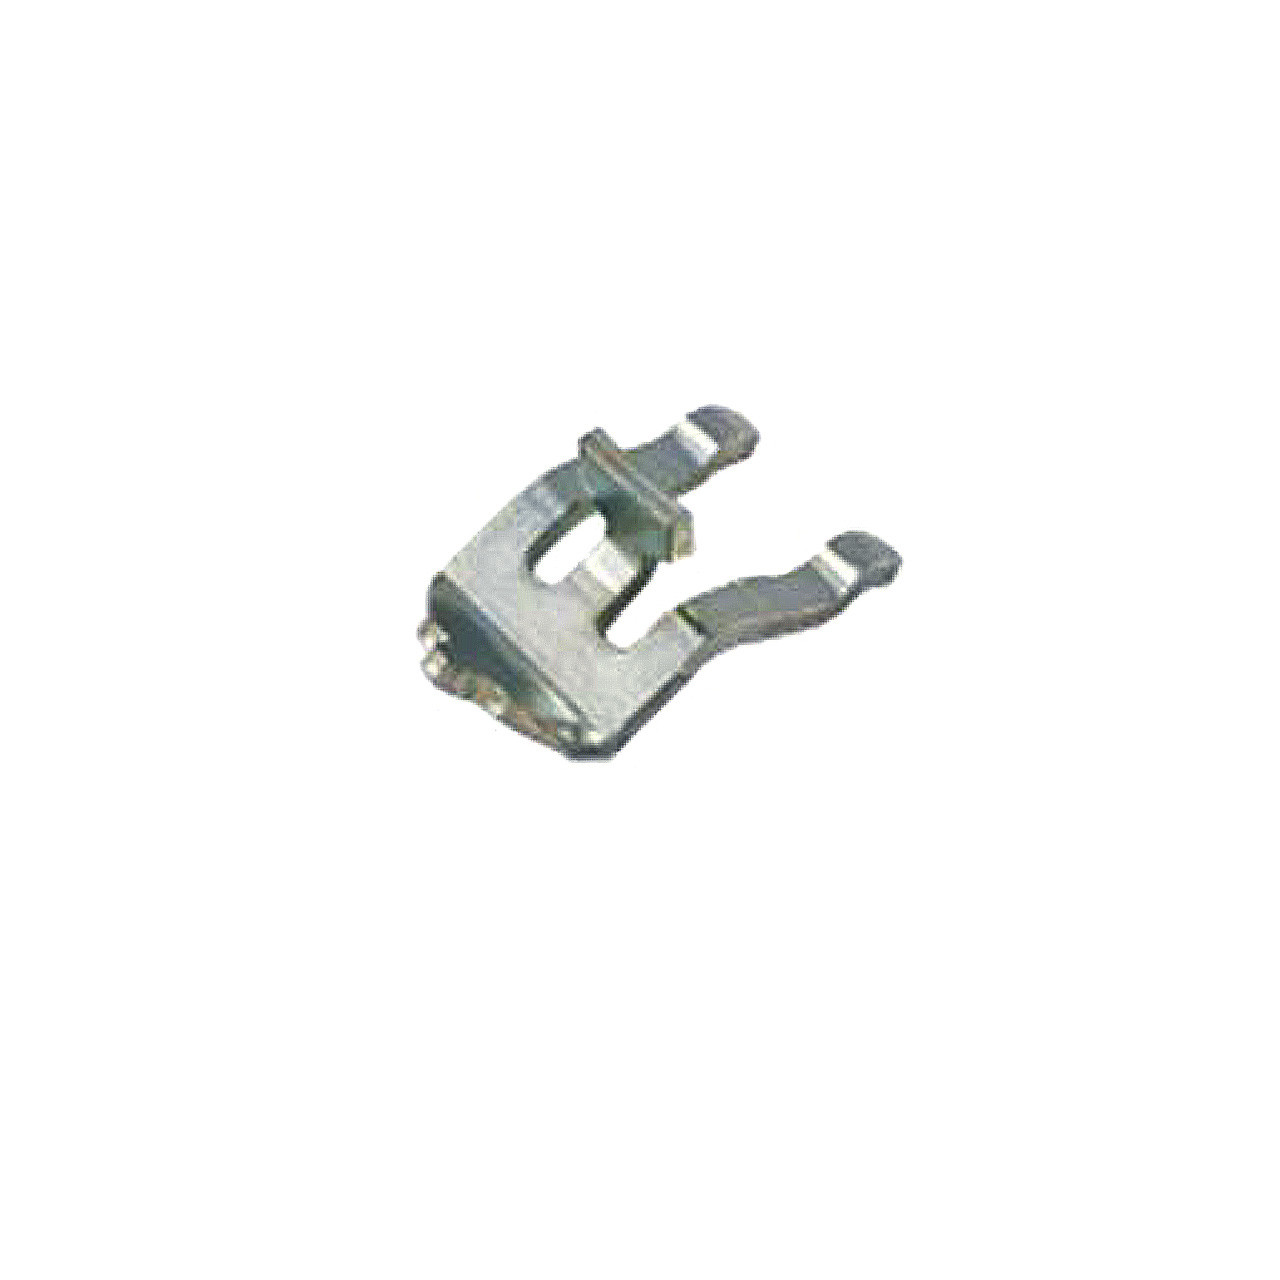 Metal Pole Clips For Use With Vertical Support Pole